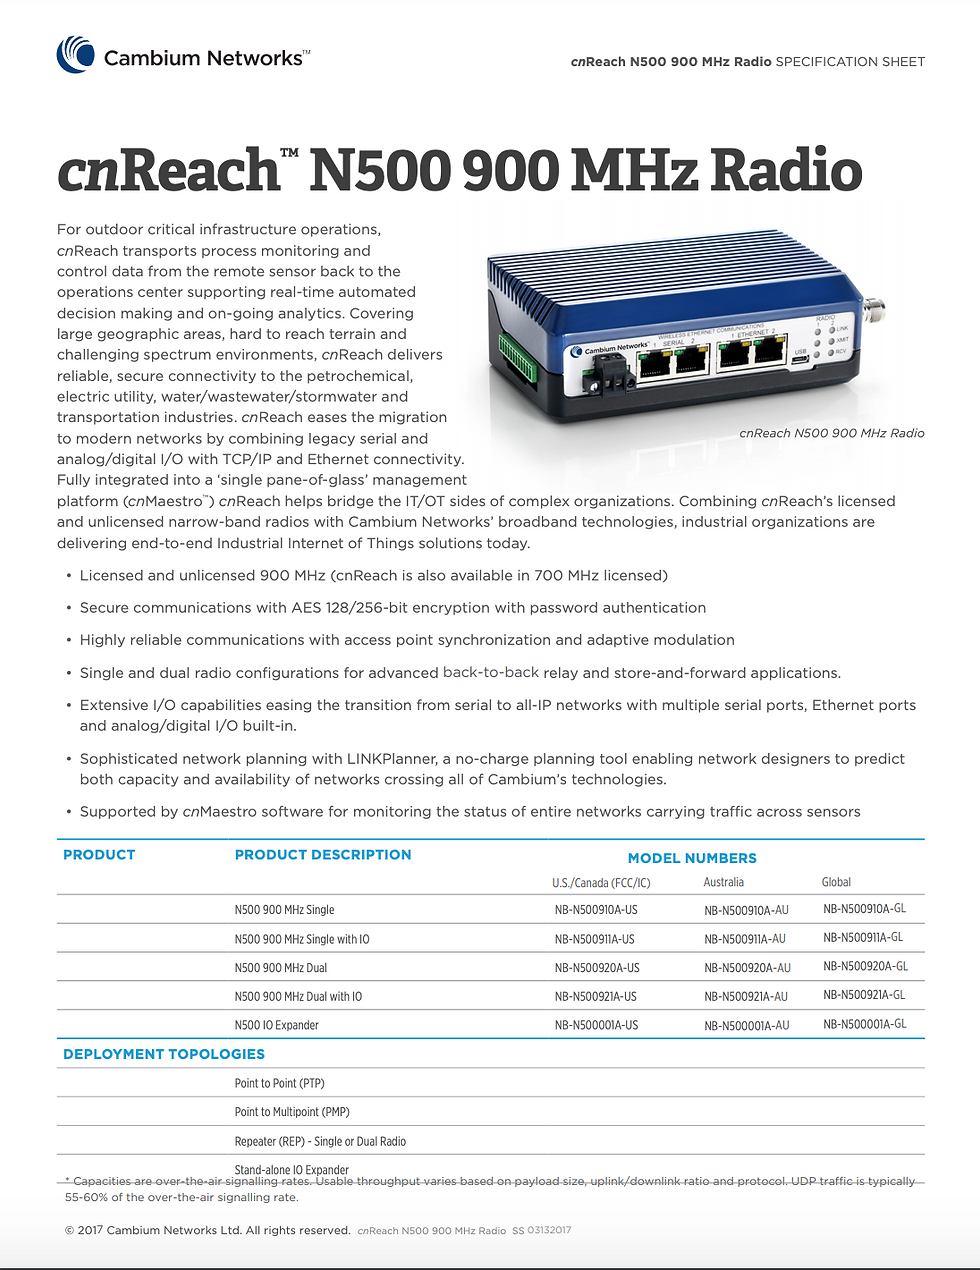 cnReach N500 900 MHz Specifications Sheet